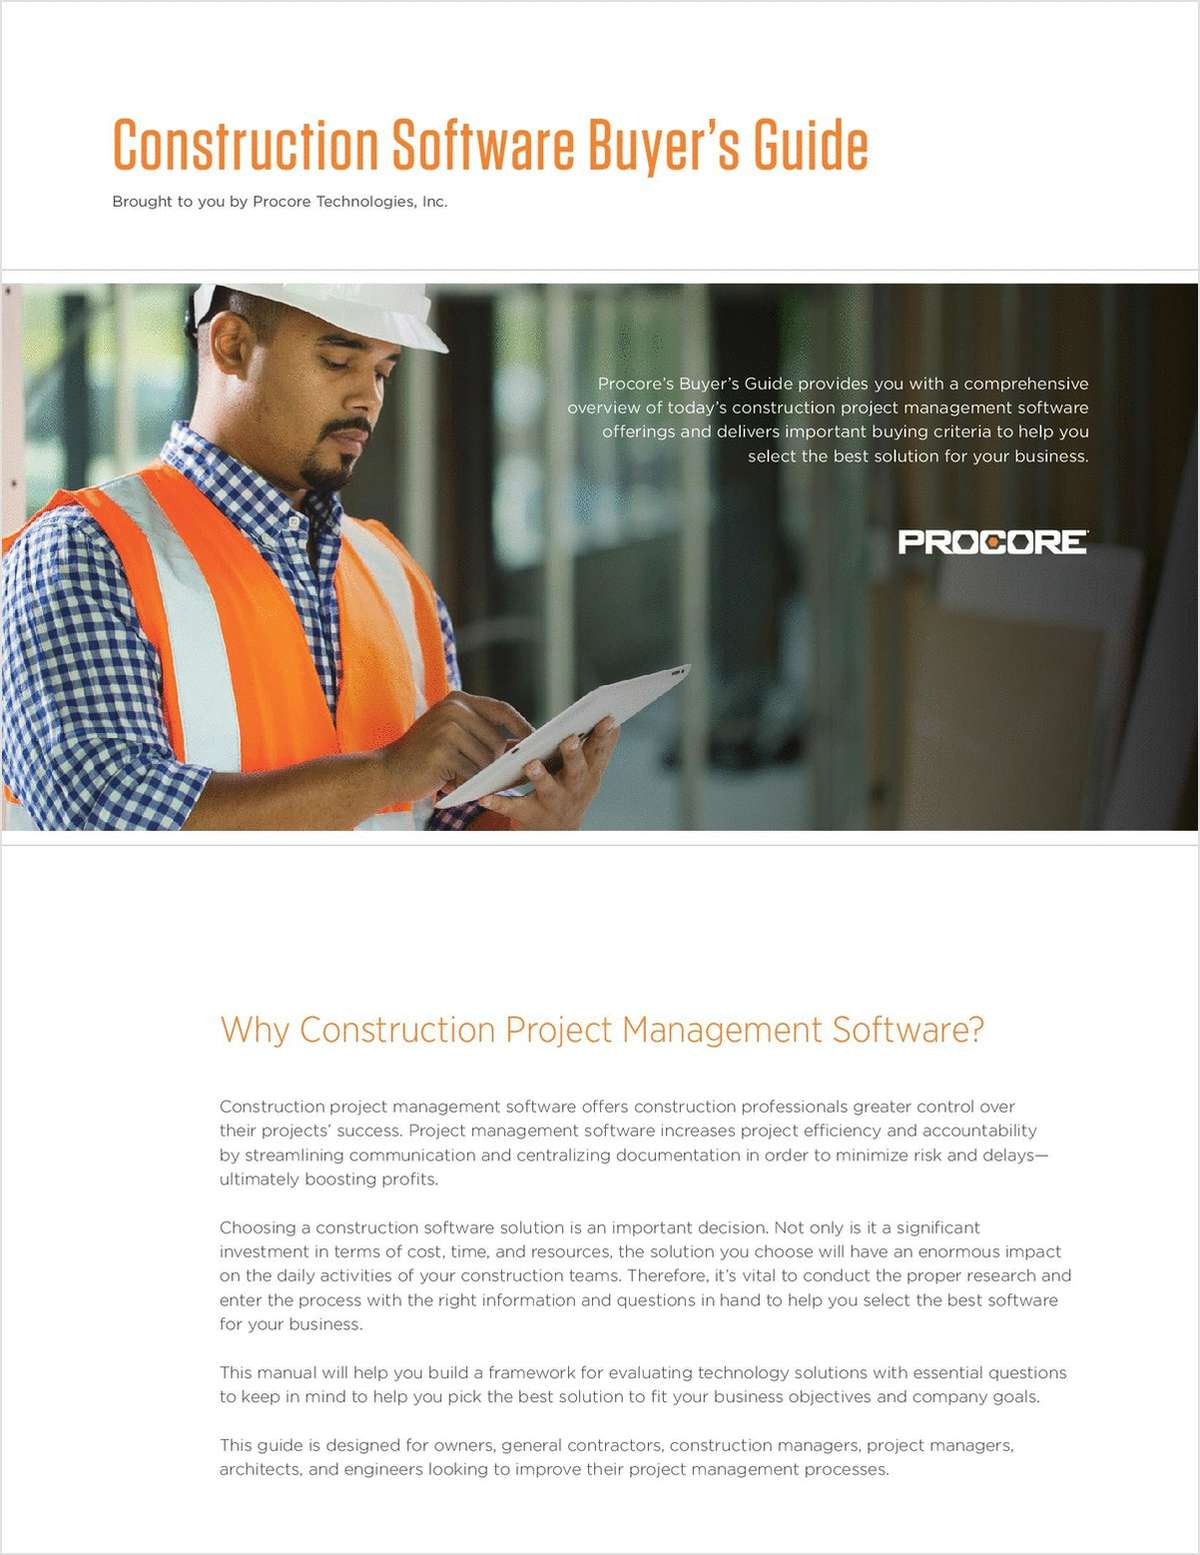 Construction Software Buyer's Guide